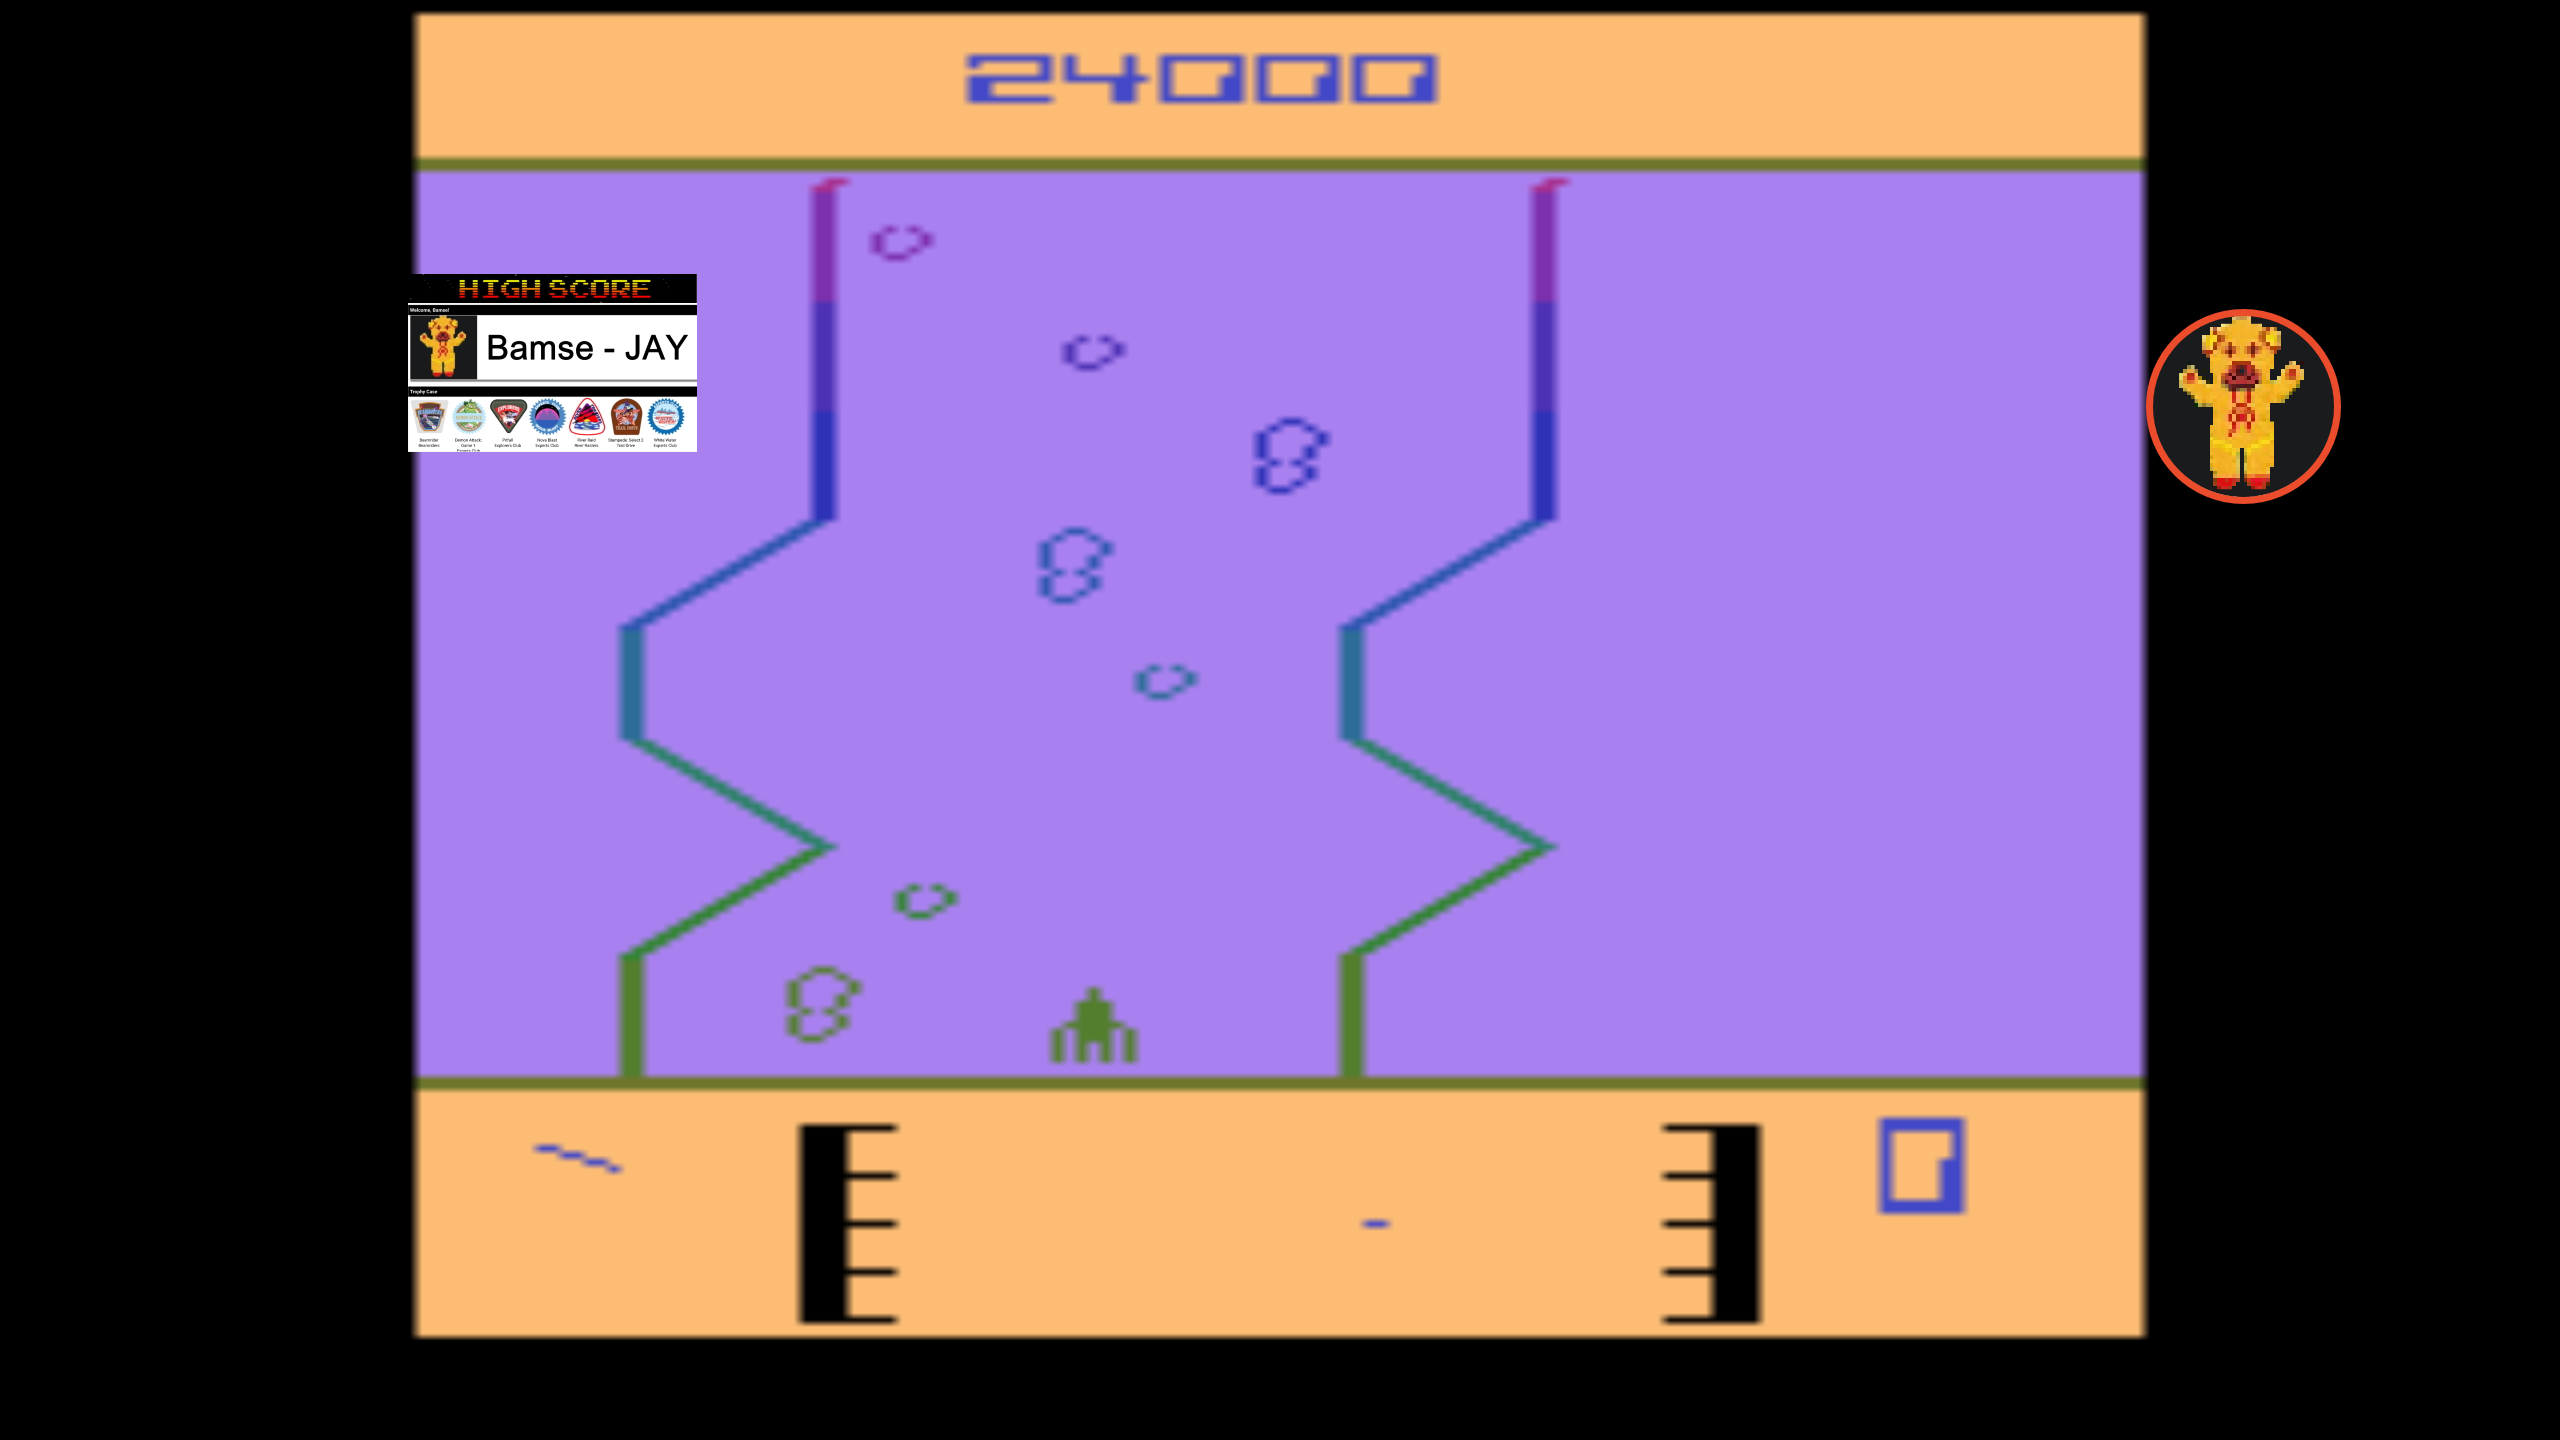 Bamse: Fantastic Voyage [Game 4] (Atari 2600 Emulated) 24,000 points on 2019-12-01 04:27:18